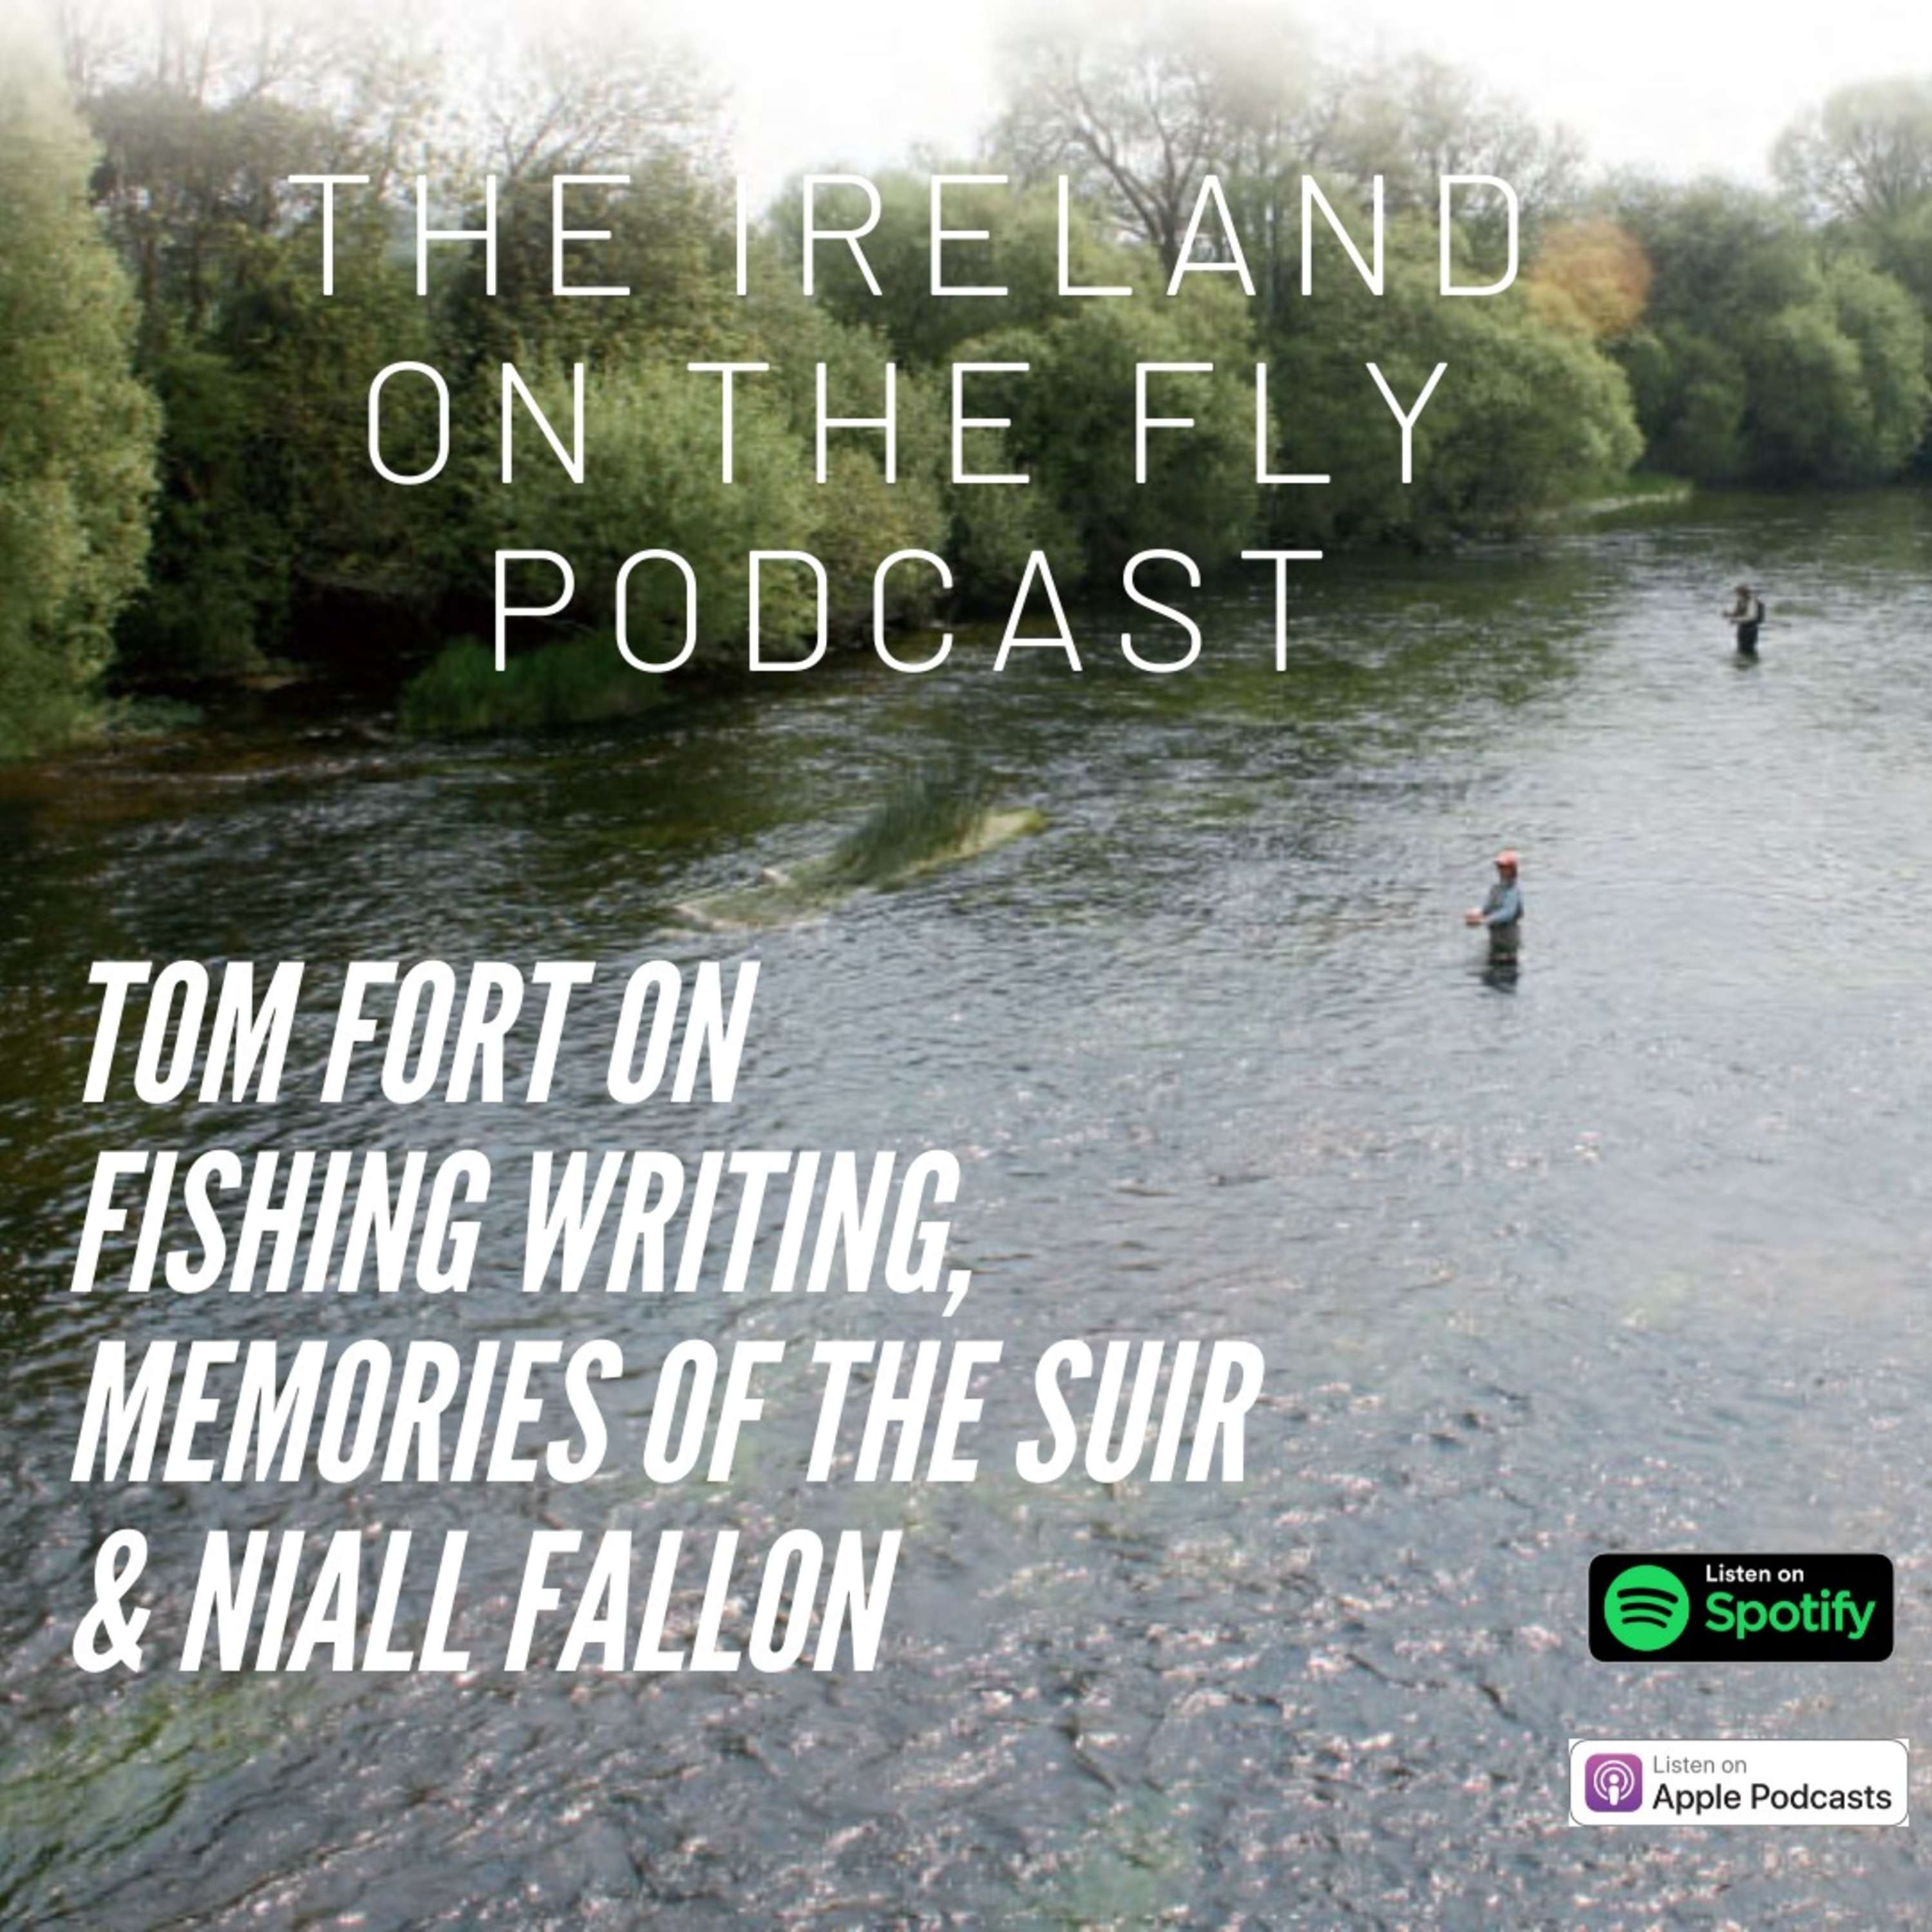 Tom Fort on fishing writing, memories of the Suir and Niall Fallon